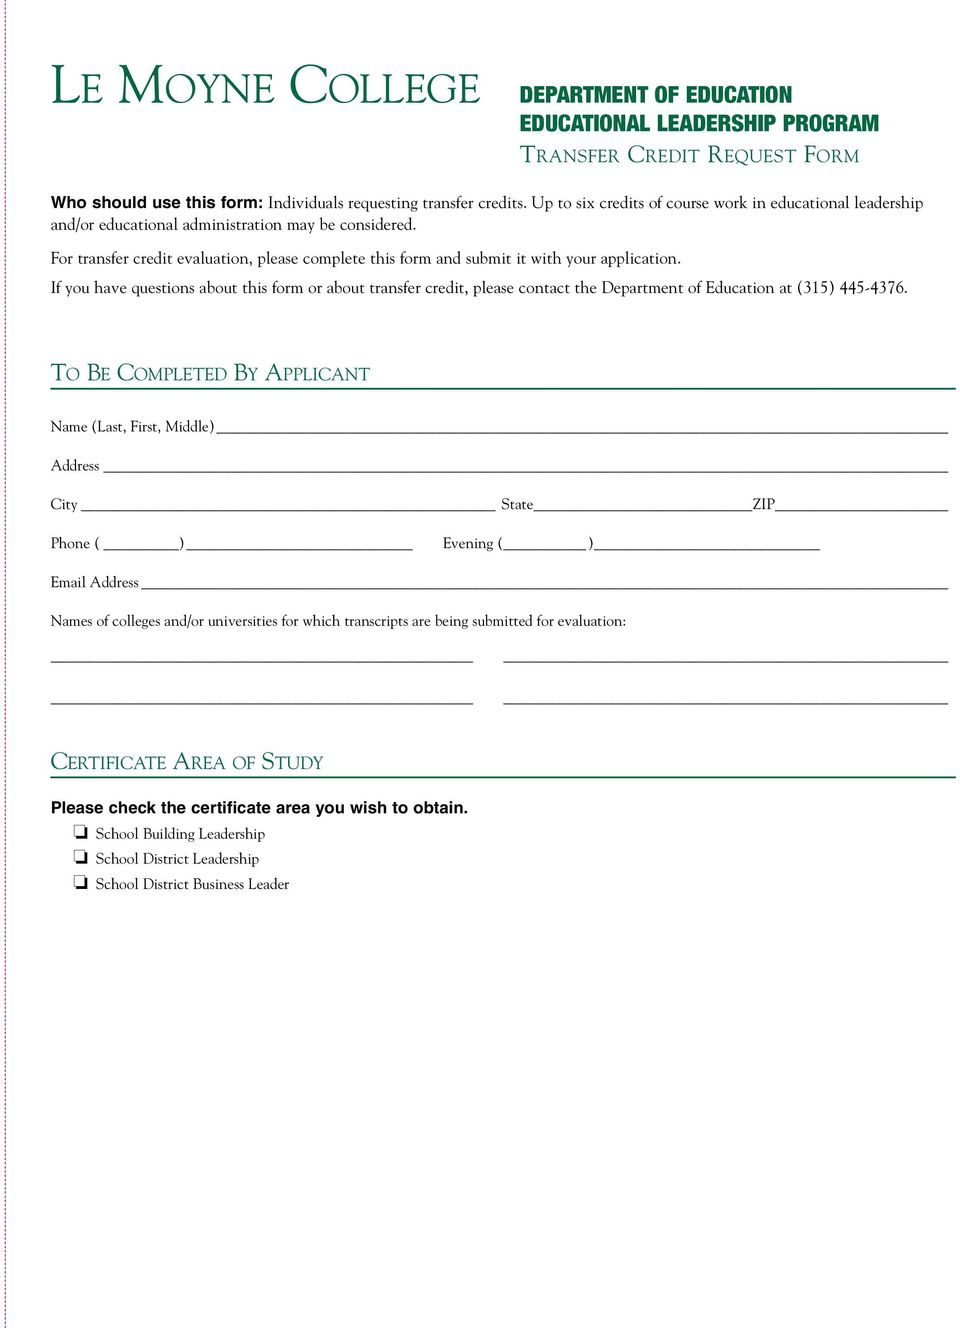 For transfer credit evaluation, please complete this form and submit it with your application.